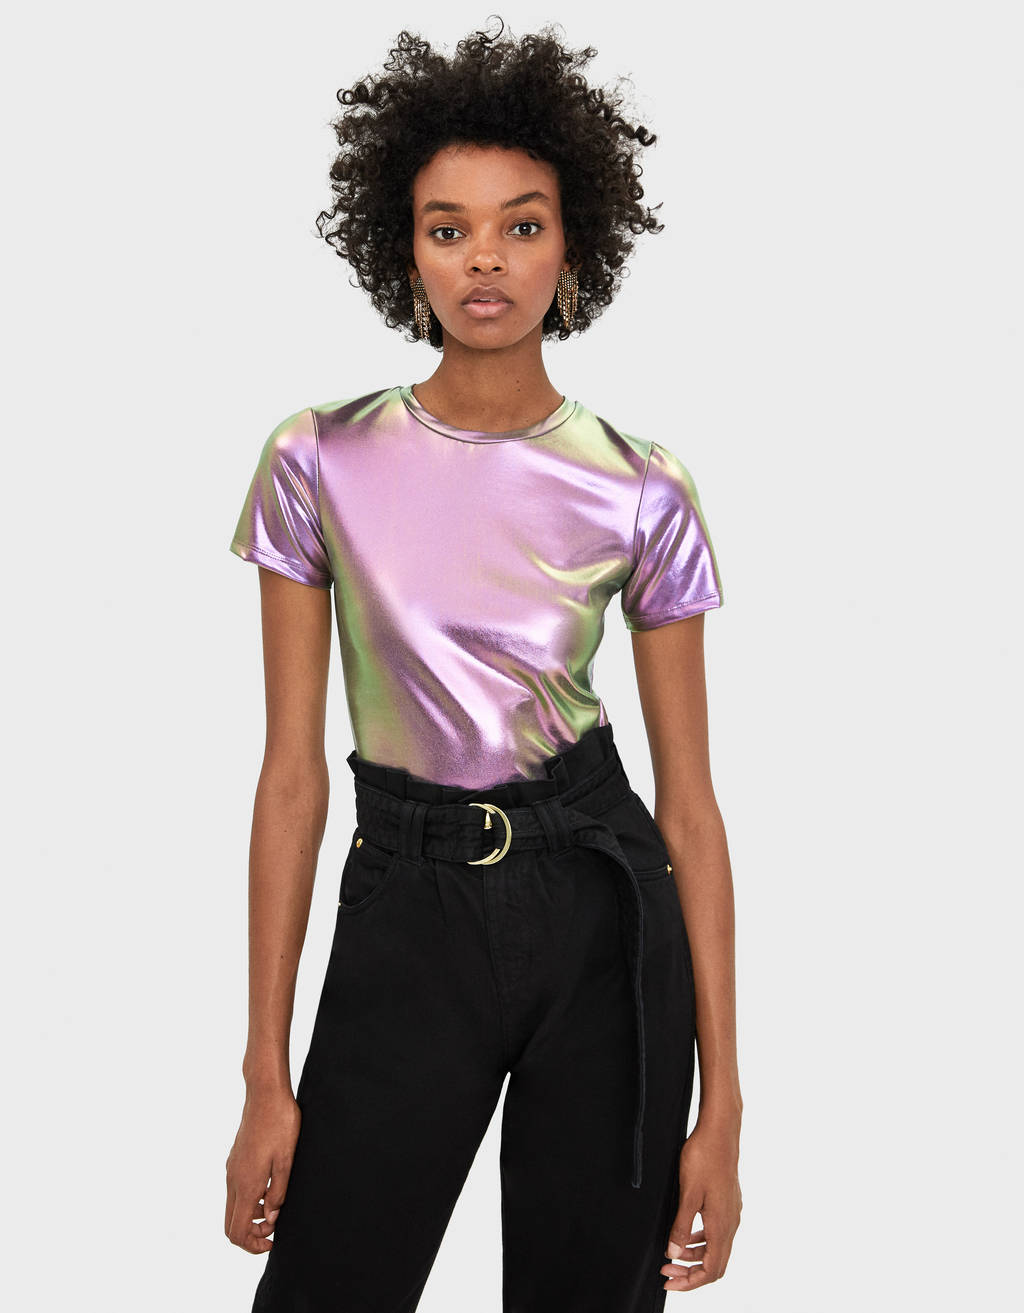 Cropped-Shirt im Metallic-Look